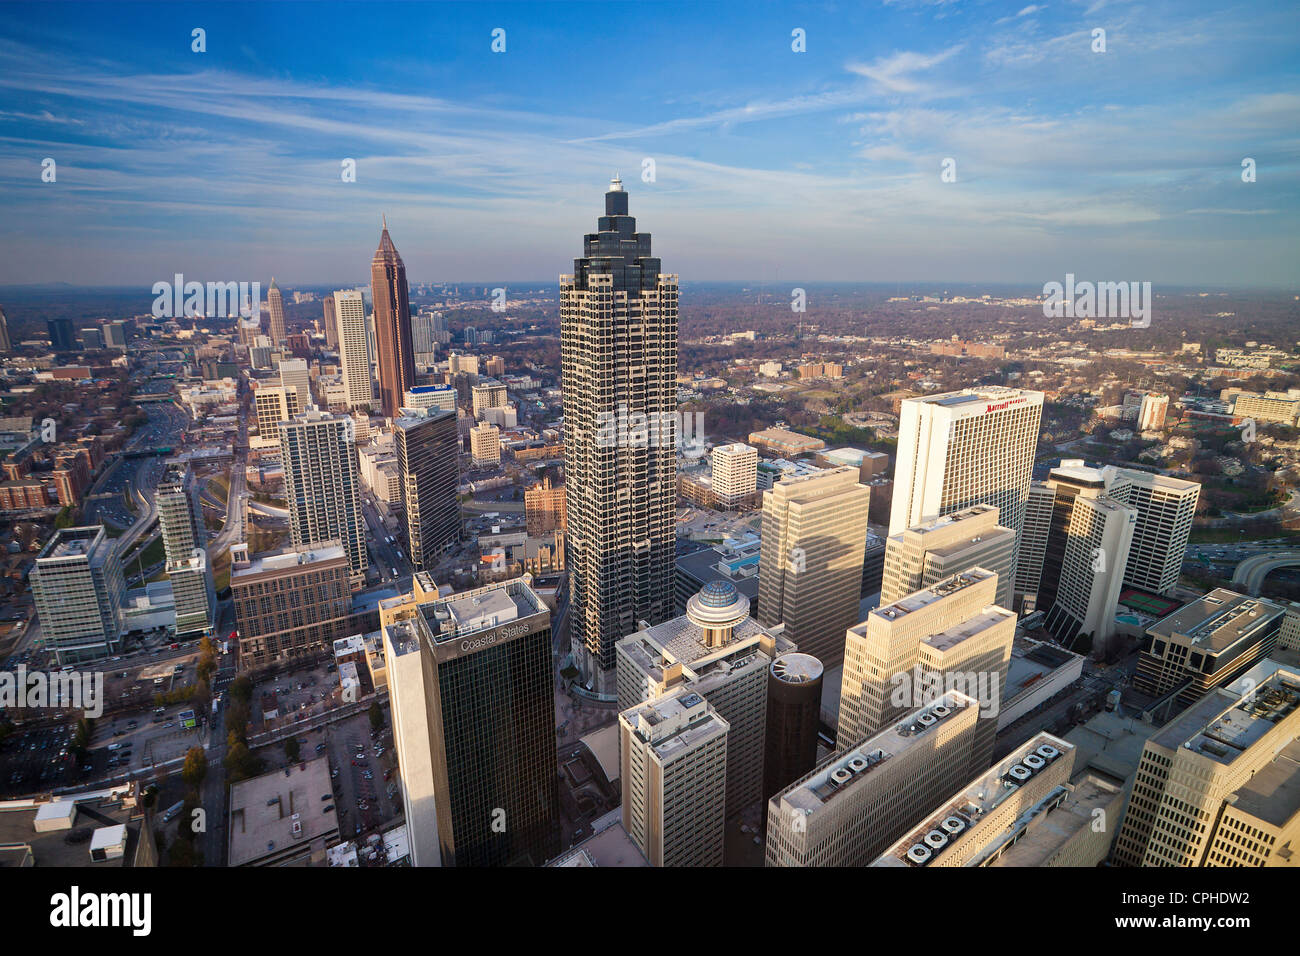 USA, United States, America, Georgia, Atlanta, architecture, downtown, buildings, modern, new, open, skyline, city, - Stock Image